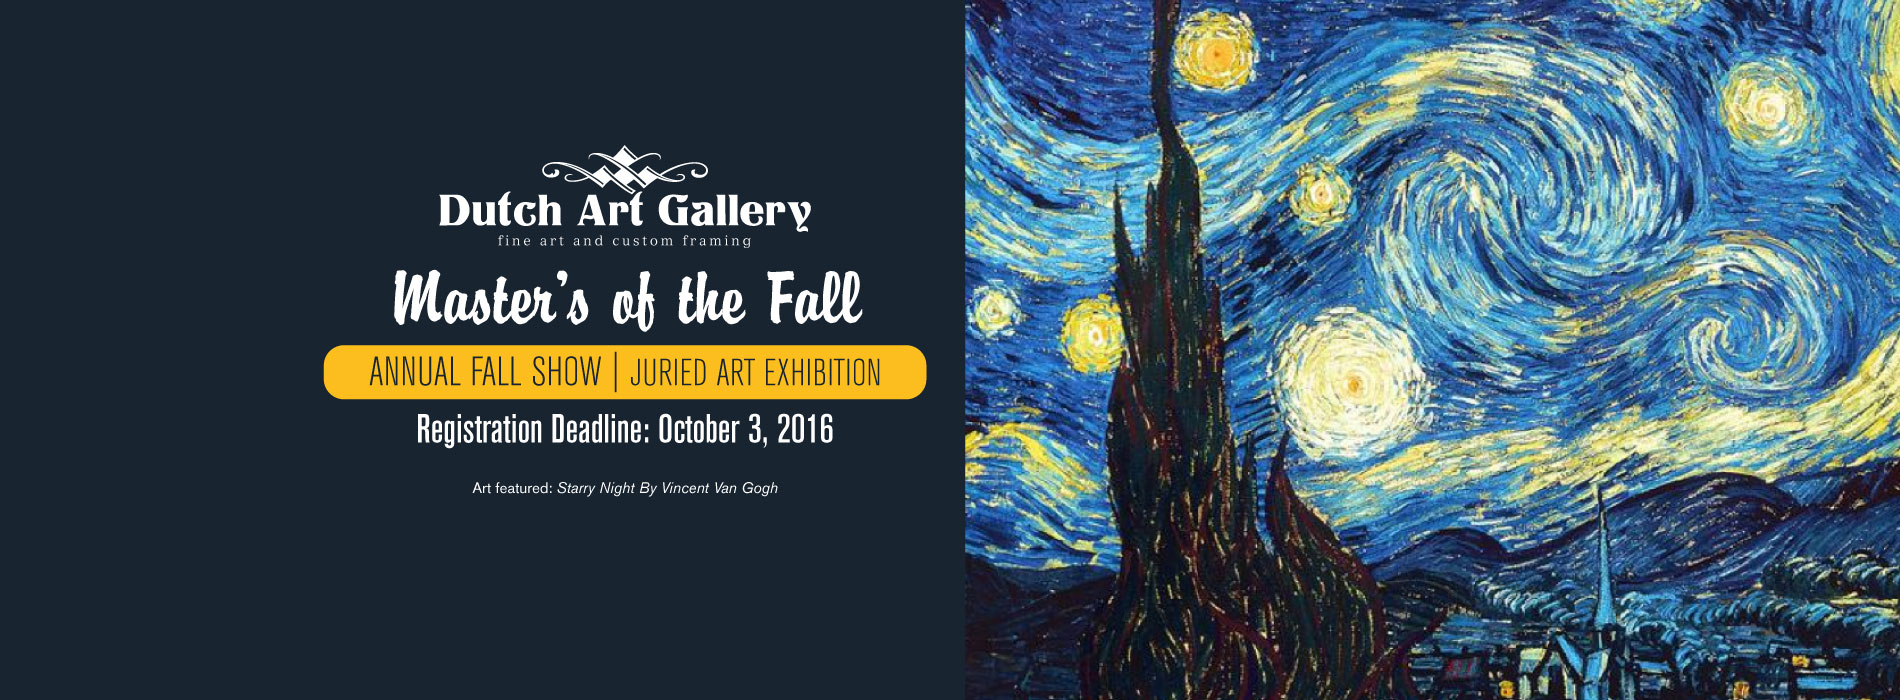 Dutch Art Gallery Annual Fall Show 2016